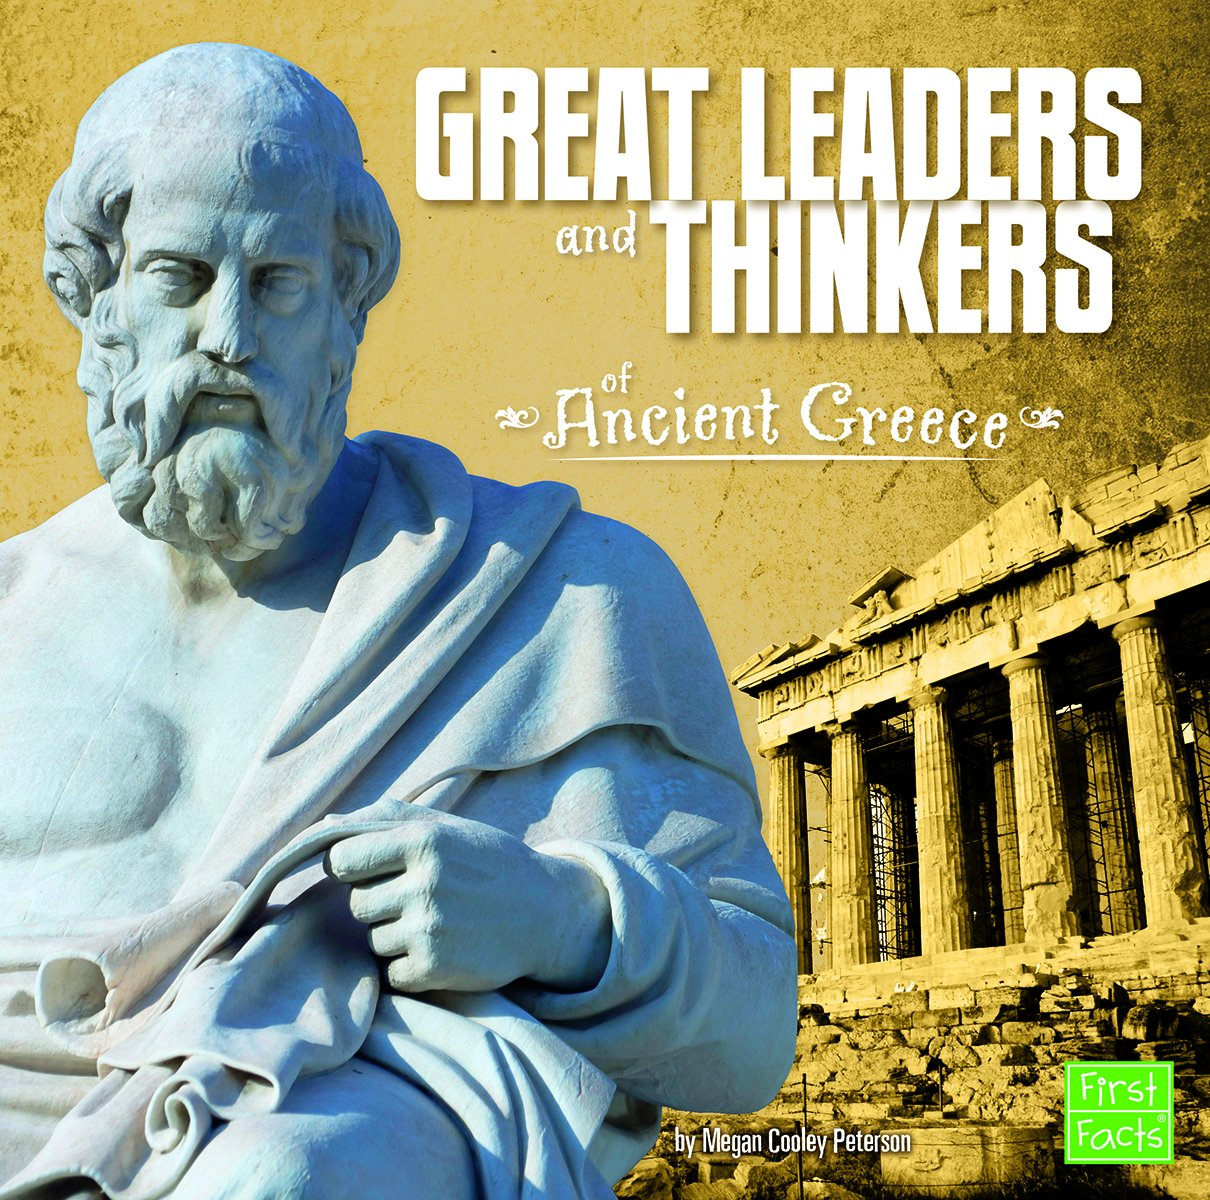 Great Leaders and Thinkers of Ancient Greece pdf